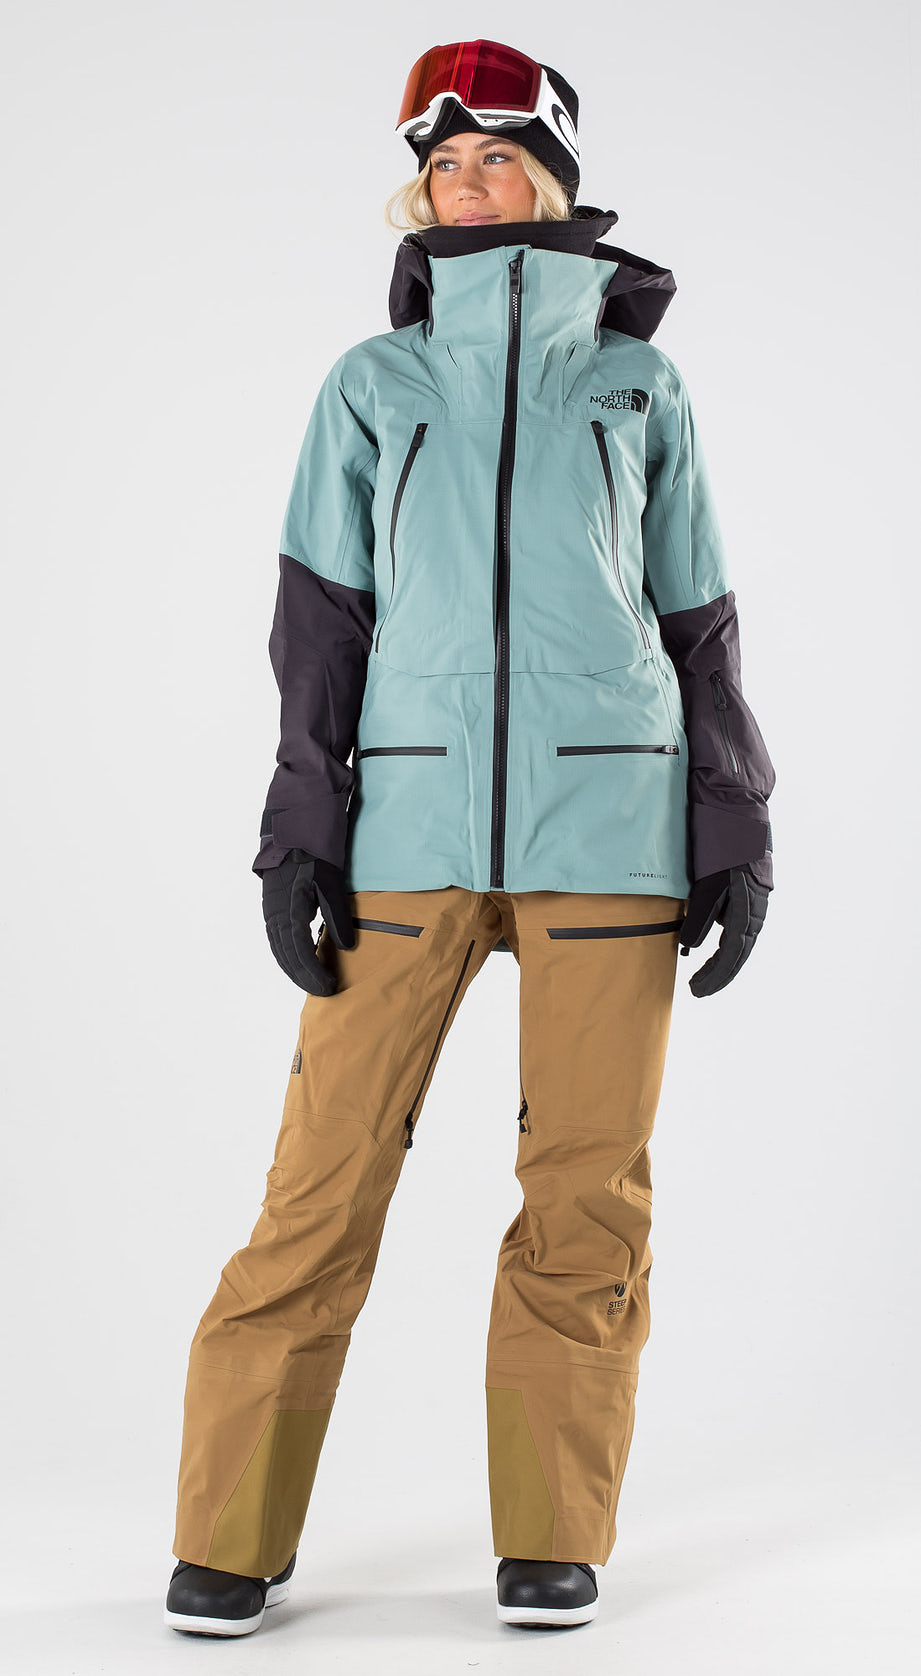 The North Face Purist Trellis Green/Weathrd Black Snowboard clothing Multi